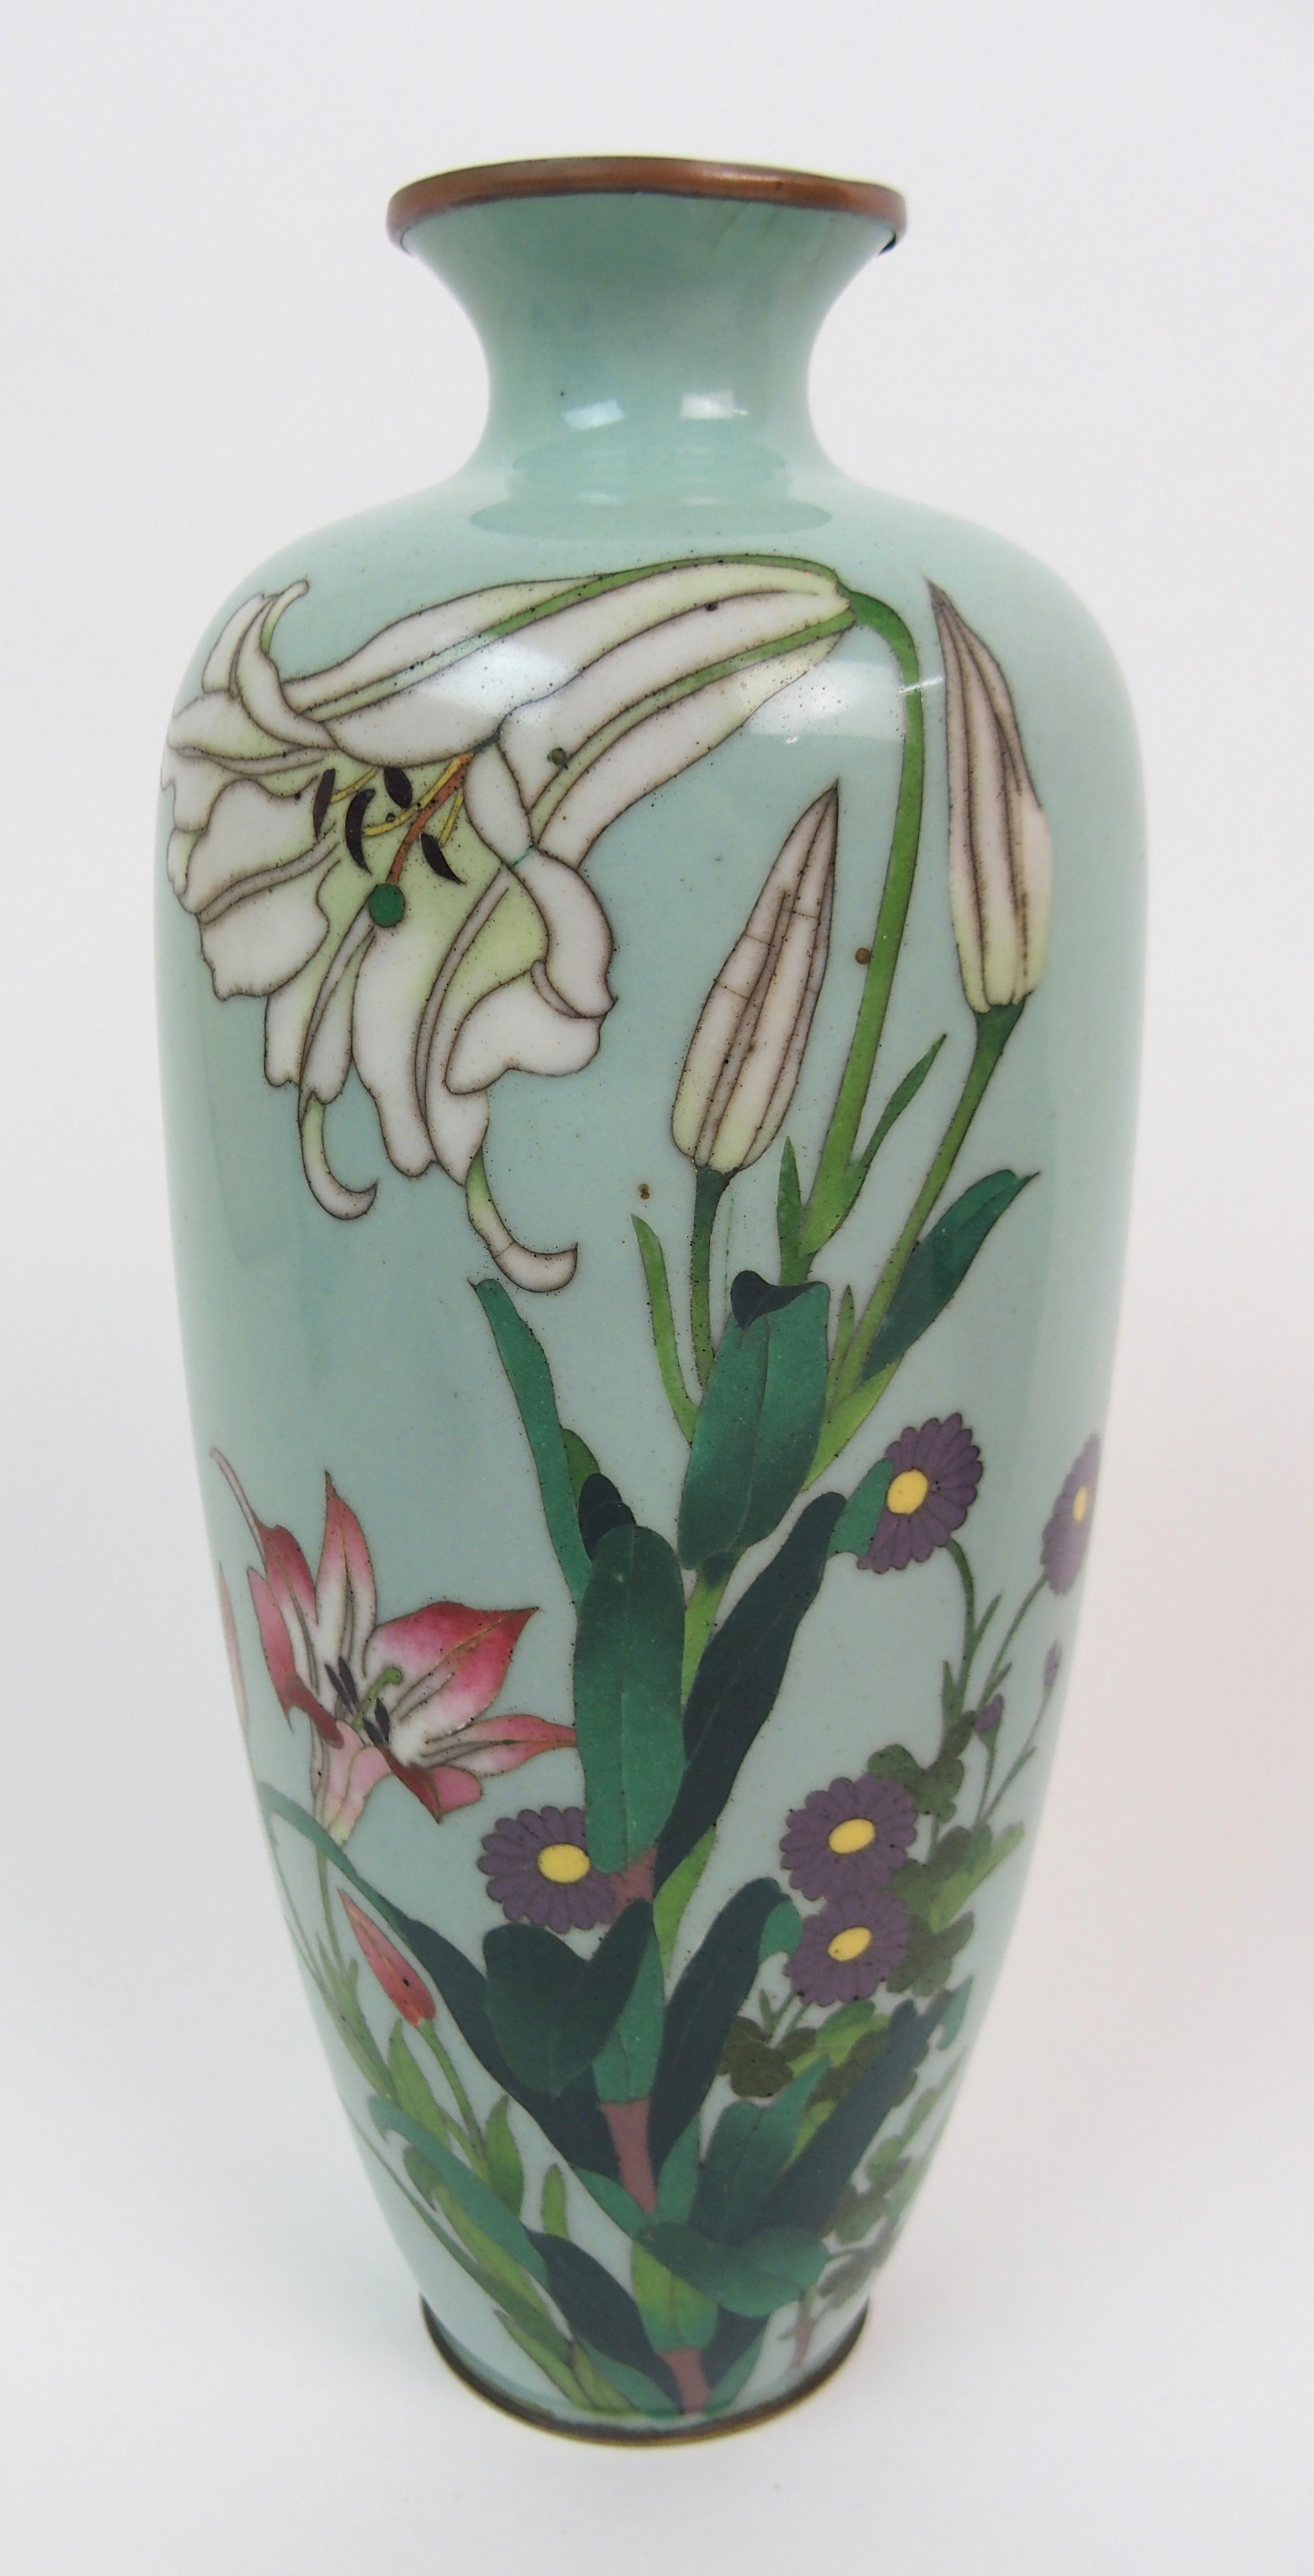 Lot 3 - A CHINESE CLOISONNE CERAMIC JAR AND COVER decorated with flowers and butterflies beneath a foliate